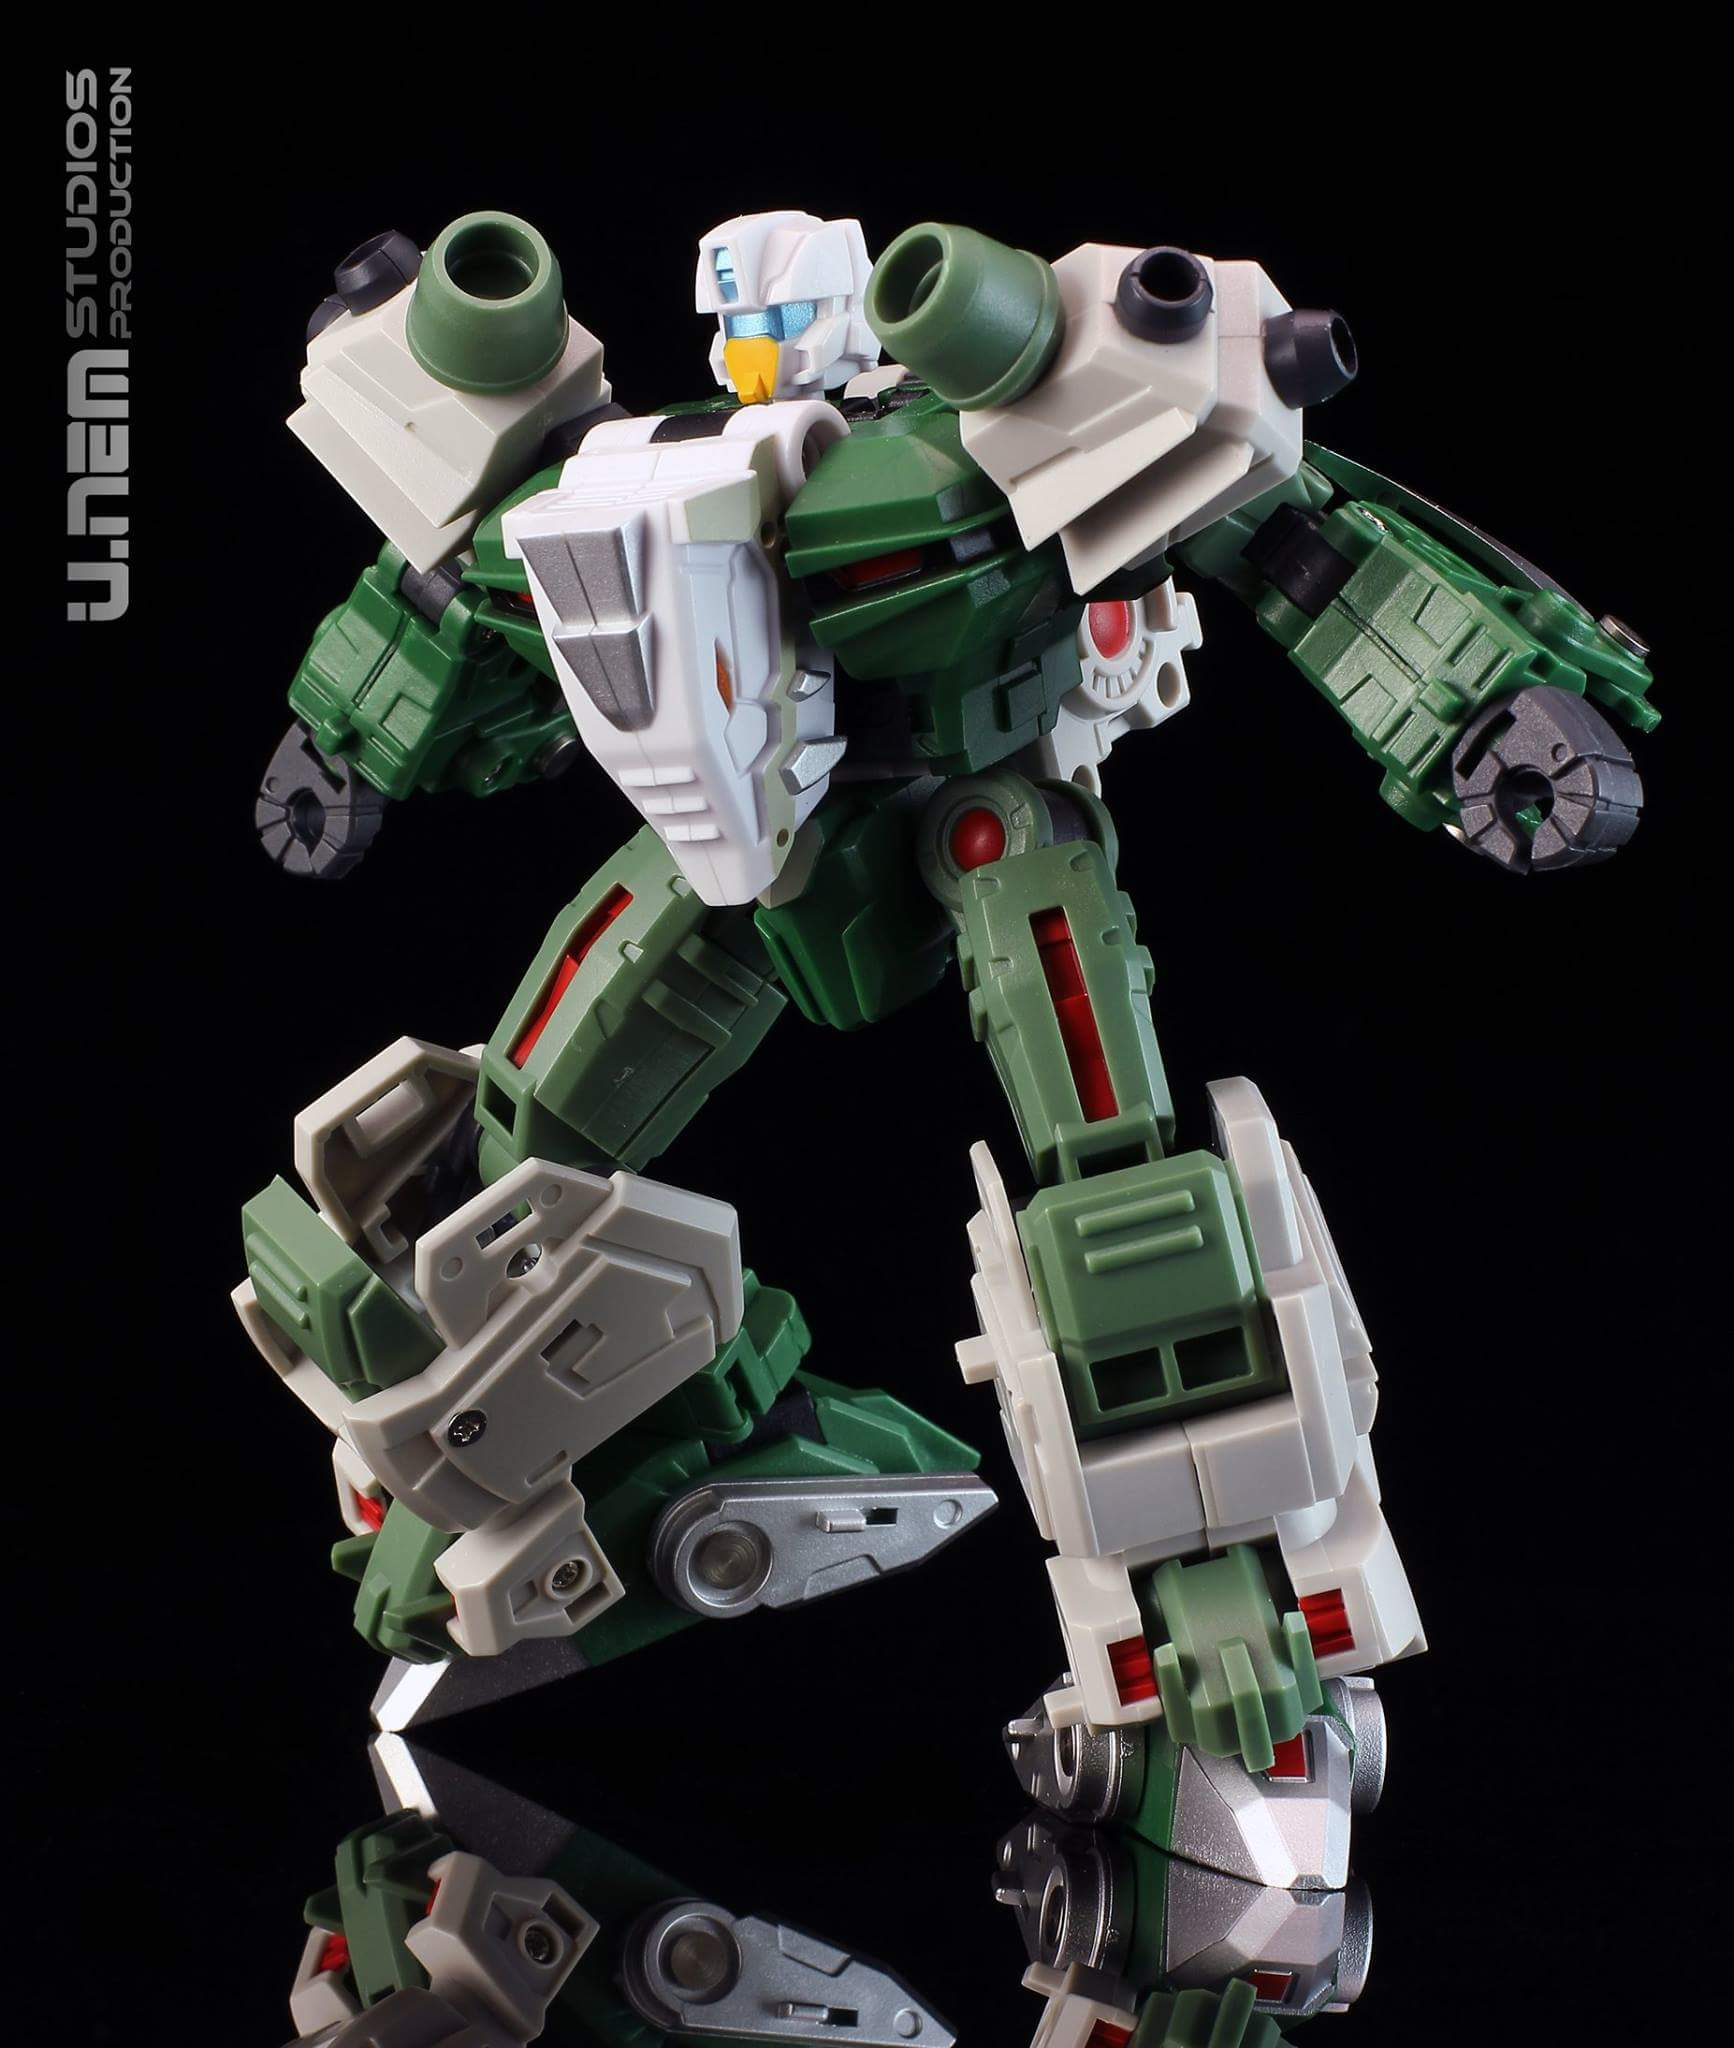 [FansProject] Produit Tiers - Jouet Saurus Ryu-oh aka Dinoking (Victory) | Monstructor (USA) - Page 3 4ZyPkaUW